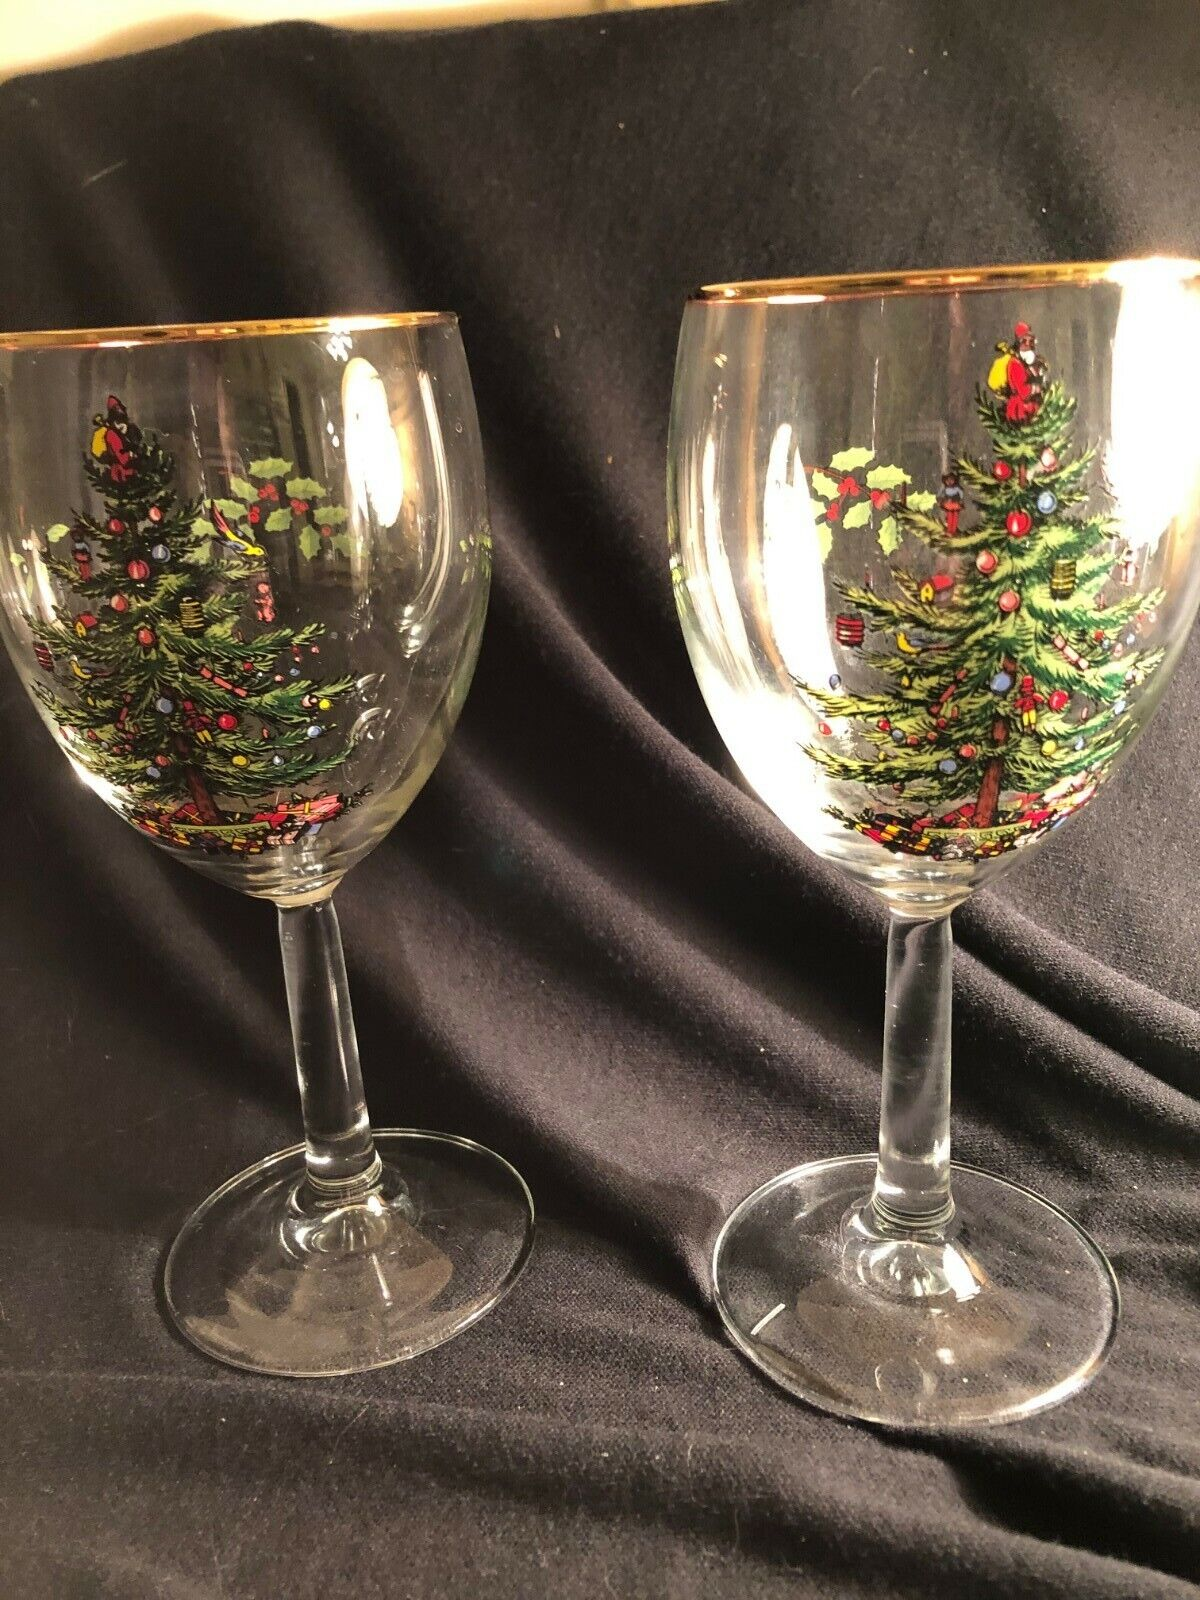 2 SPODE CHRISTMAS TREE WINE/WATER STEMS 1 With A Flaw  - $4.99